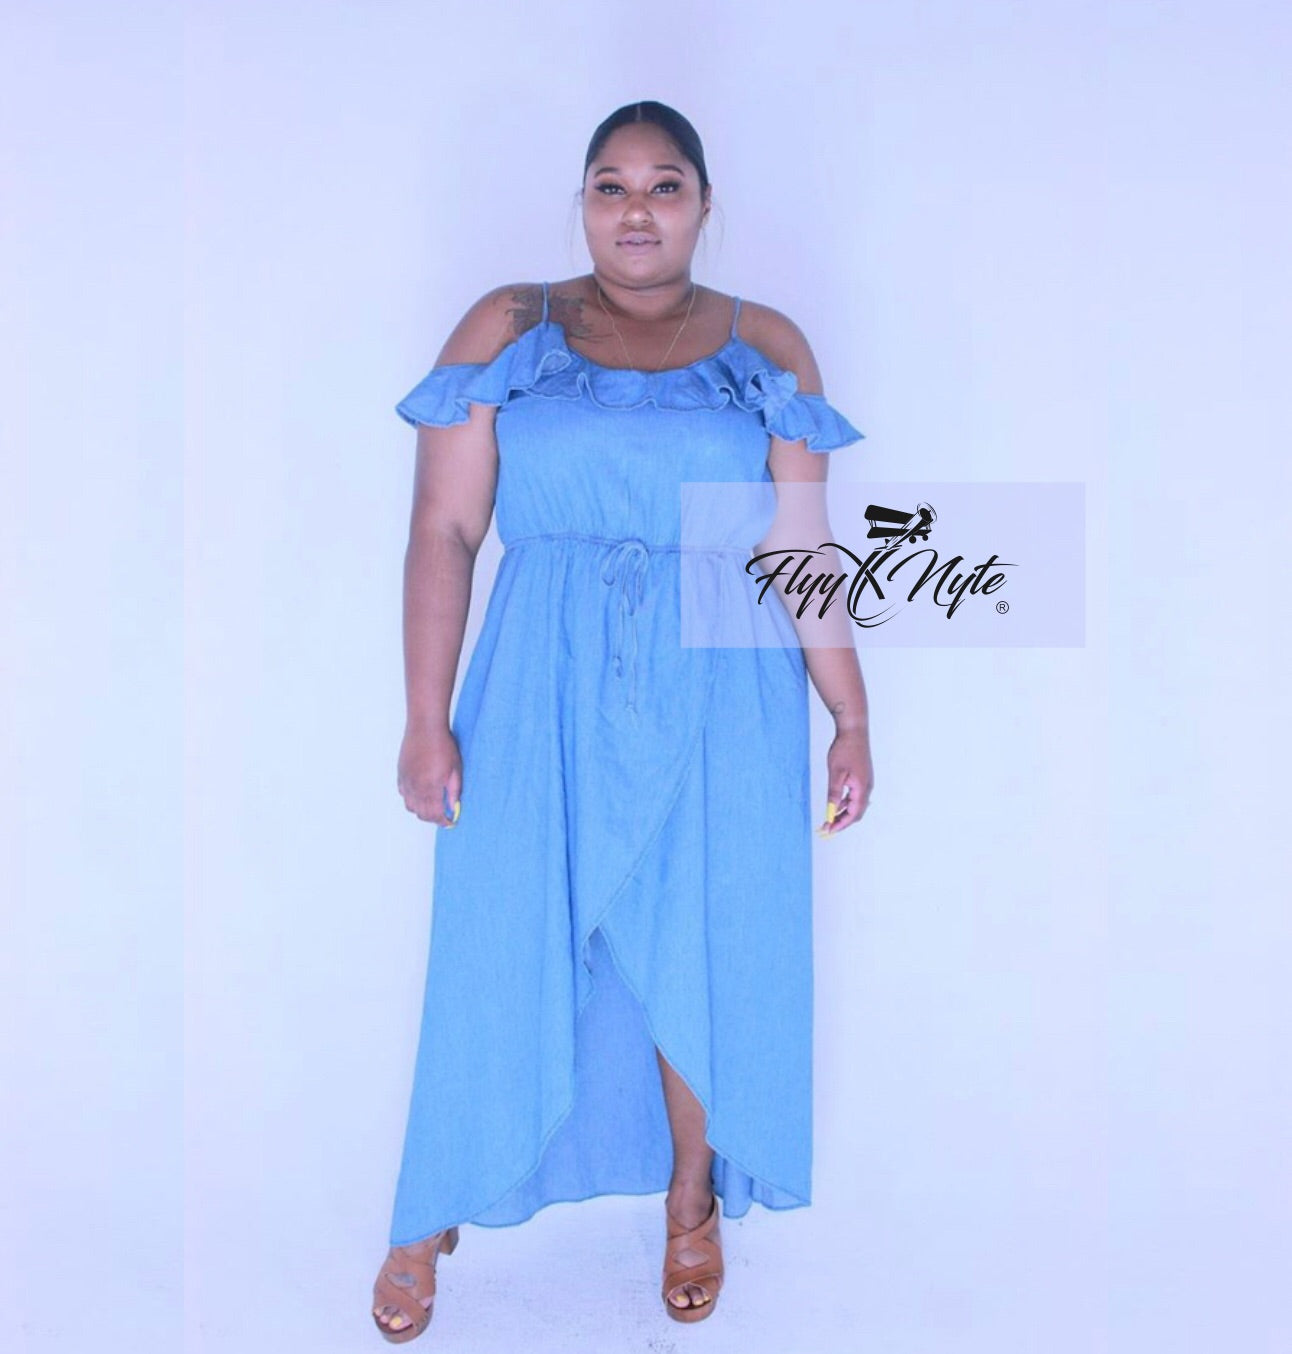 Plus Size SIMPLY ME Maxi Dress in Medium Wash